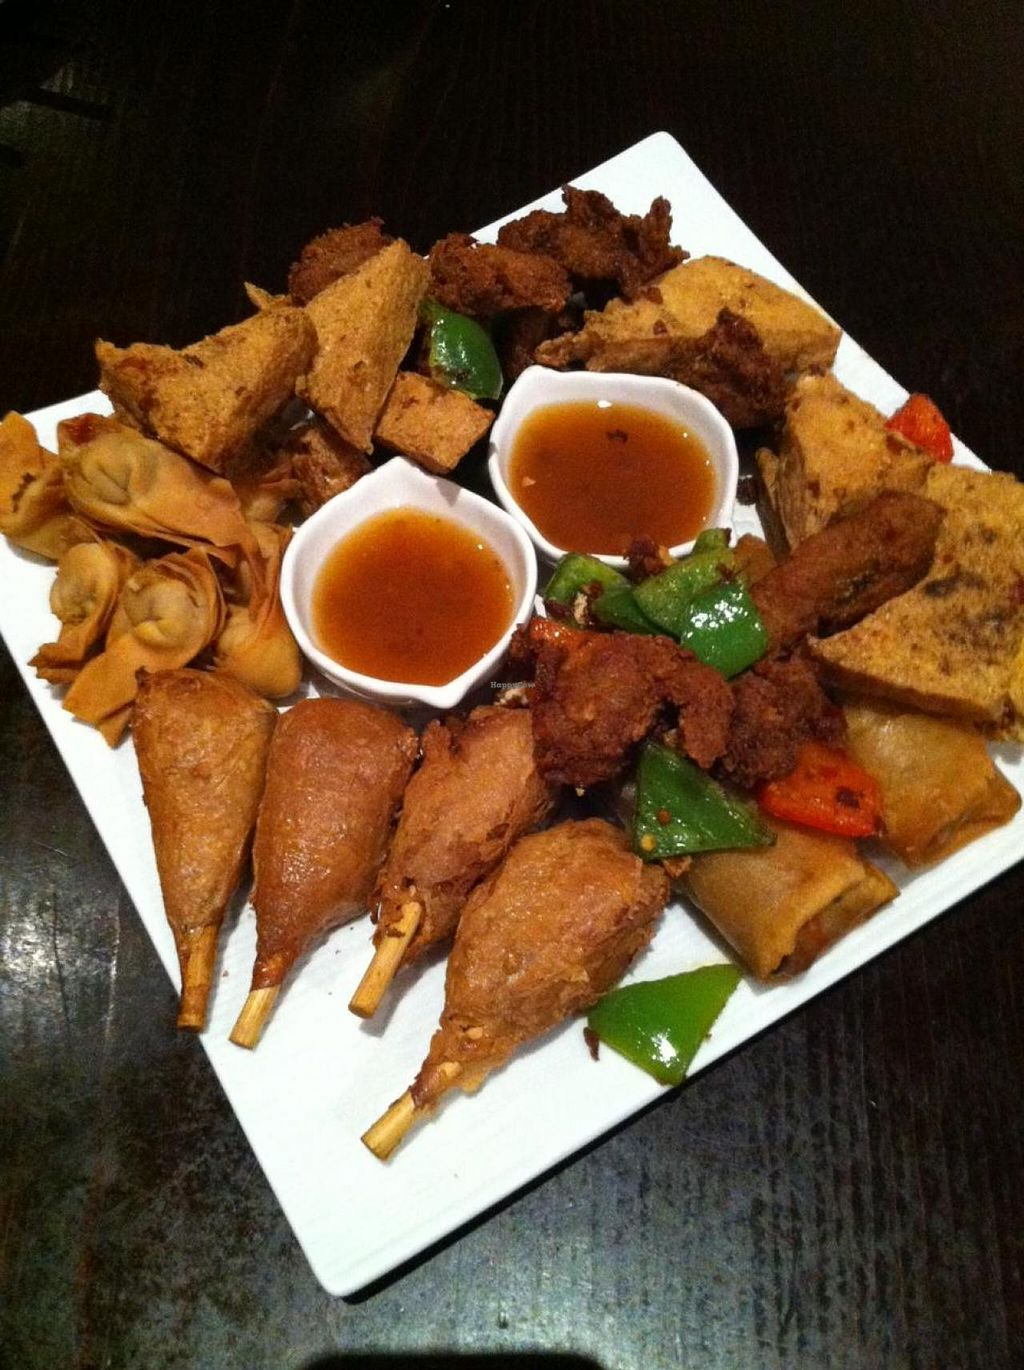 "Photo of Panz Veggie Restaurant  by <a href=""/members/profile/vegan%20frog"">vegan frog</a> <br/>The big 5. Deep fried starter for 4 people <br/> November 29, 2014  - <a href='/contact/abuse/image/21602/86740'>Report</a>"